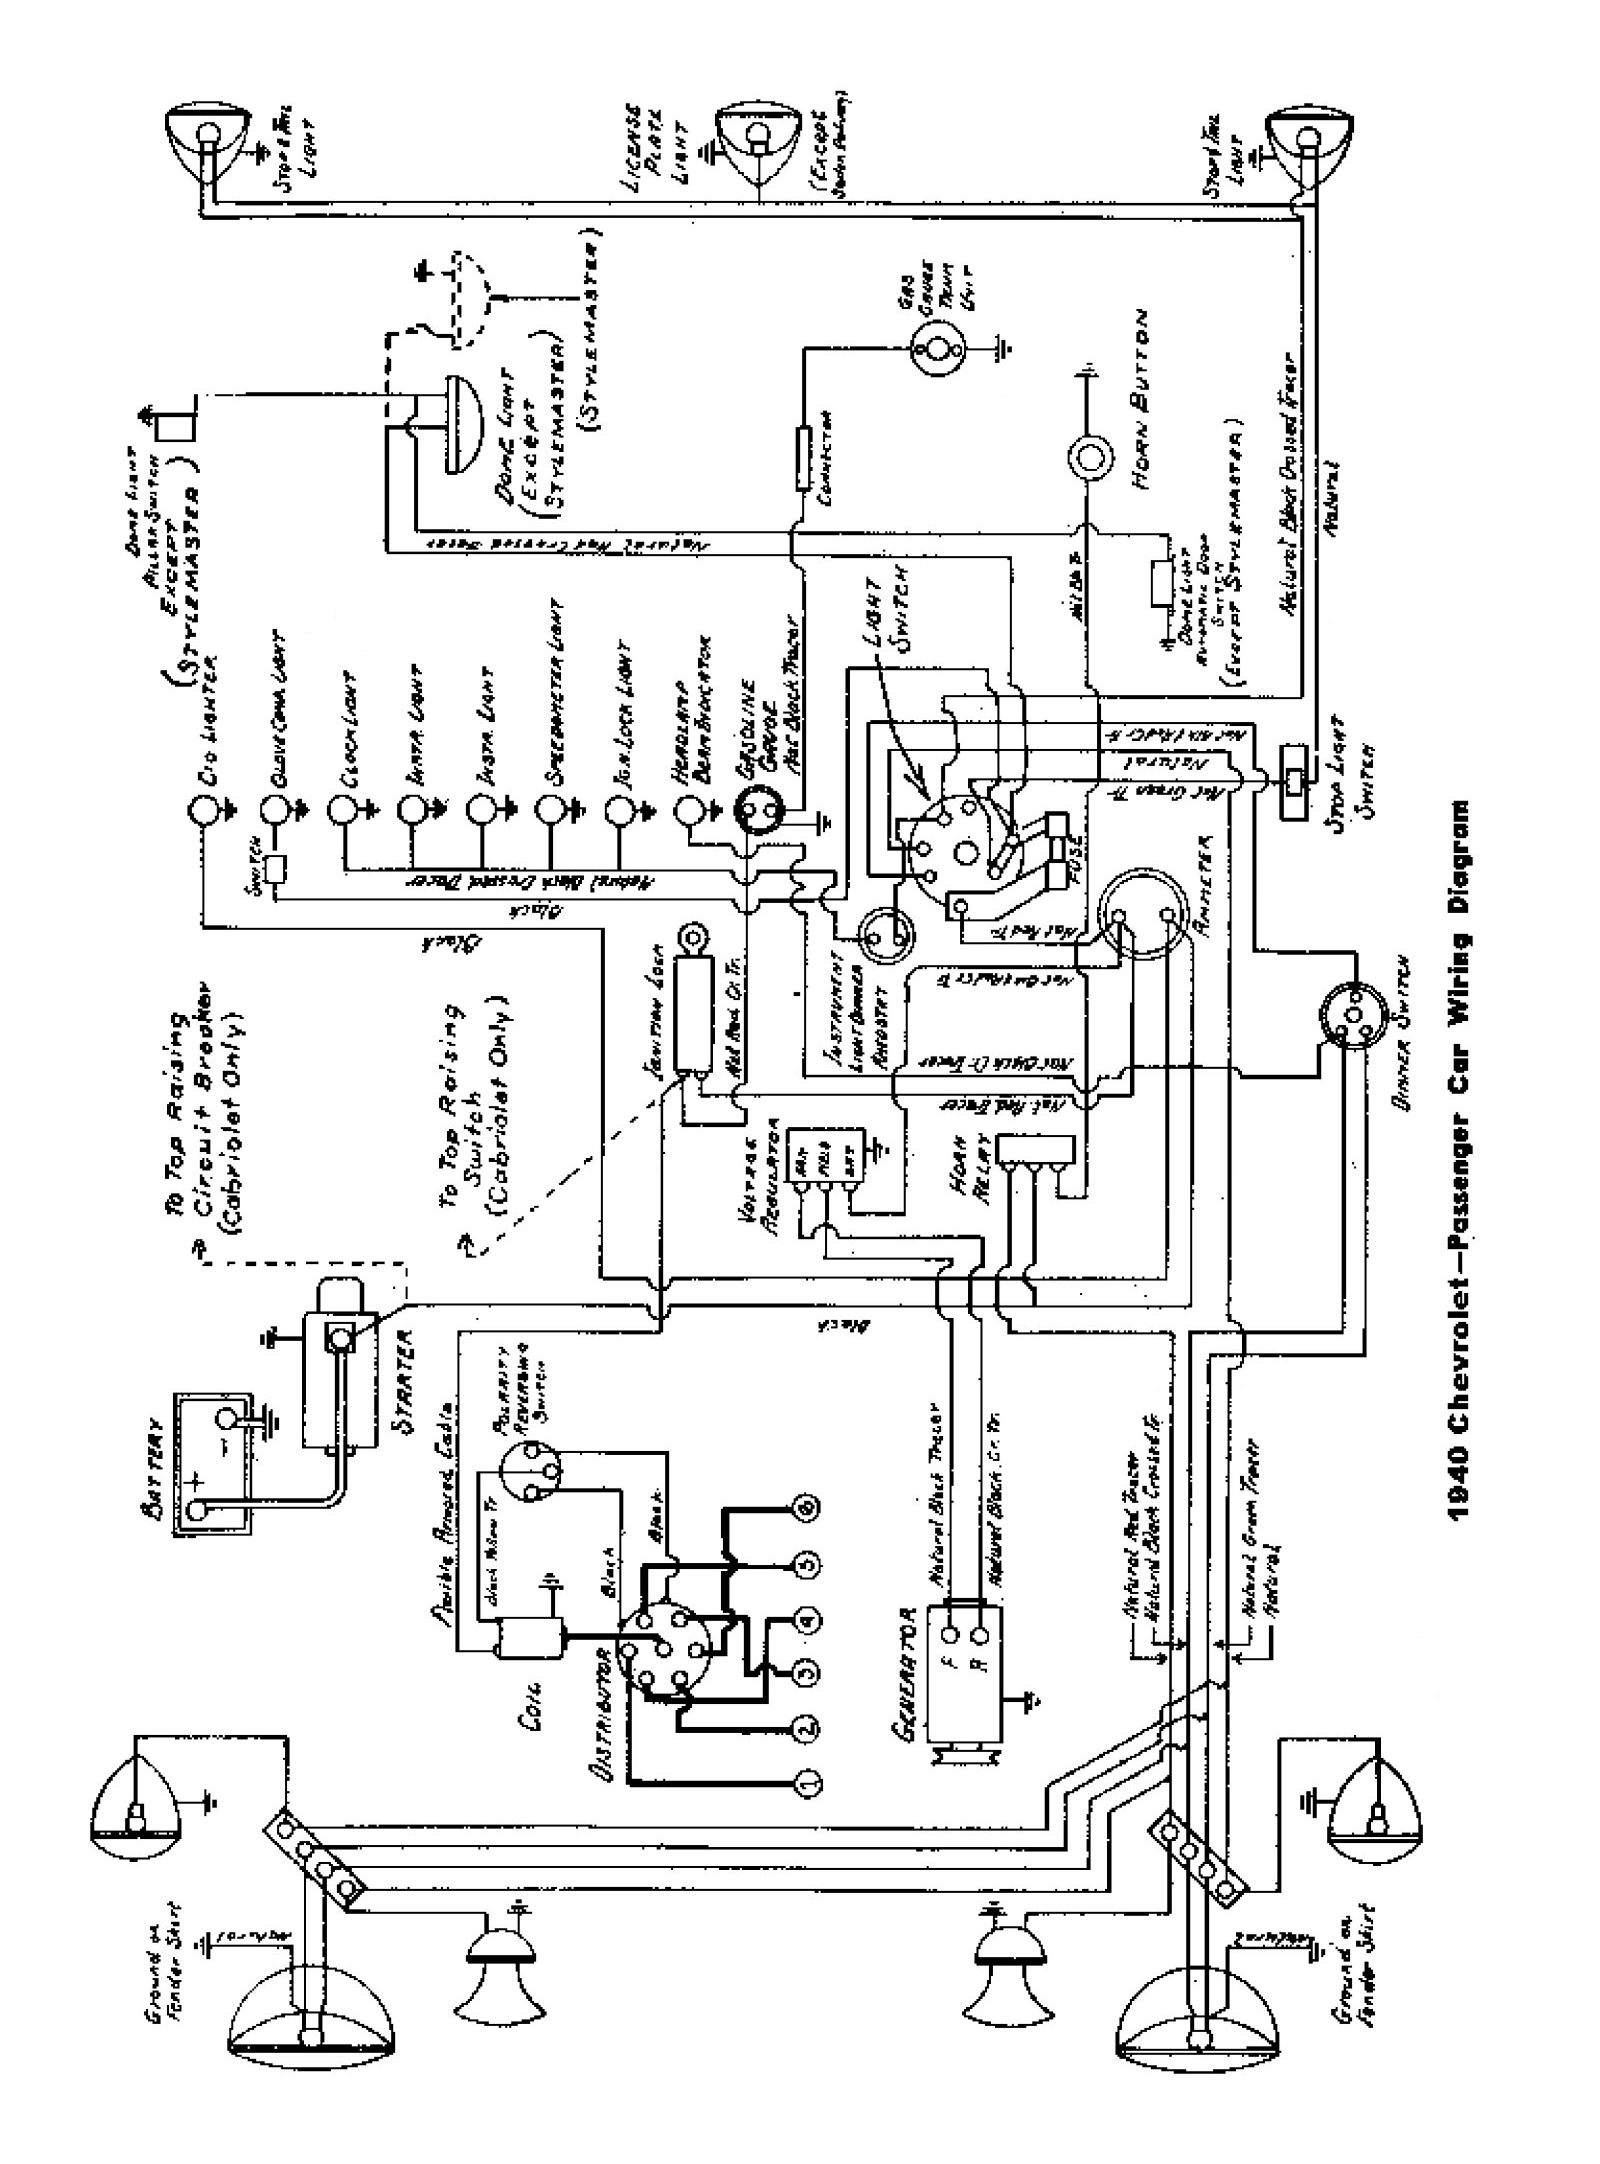 40car chevy wiring diagrams painless wiring harness 1953 chevy truck at reclaimingppi.co